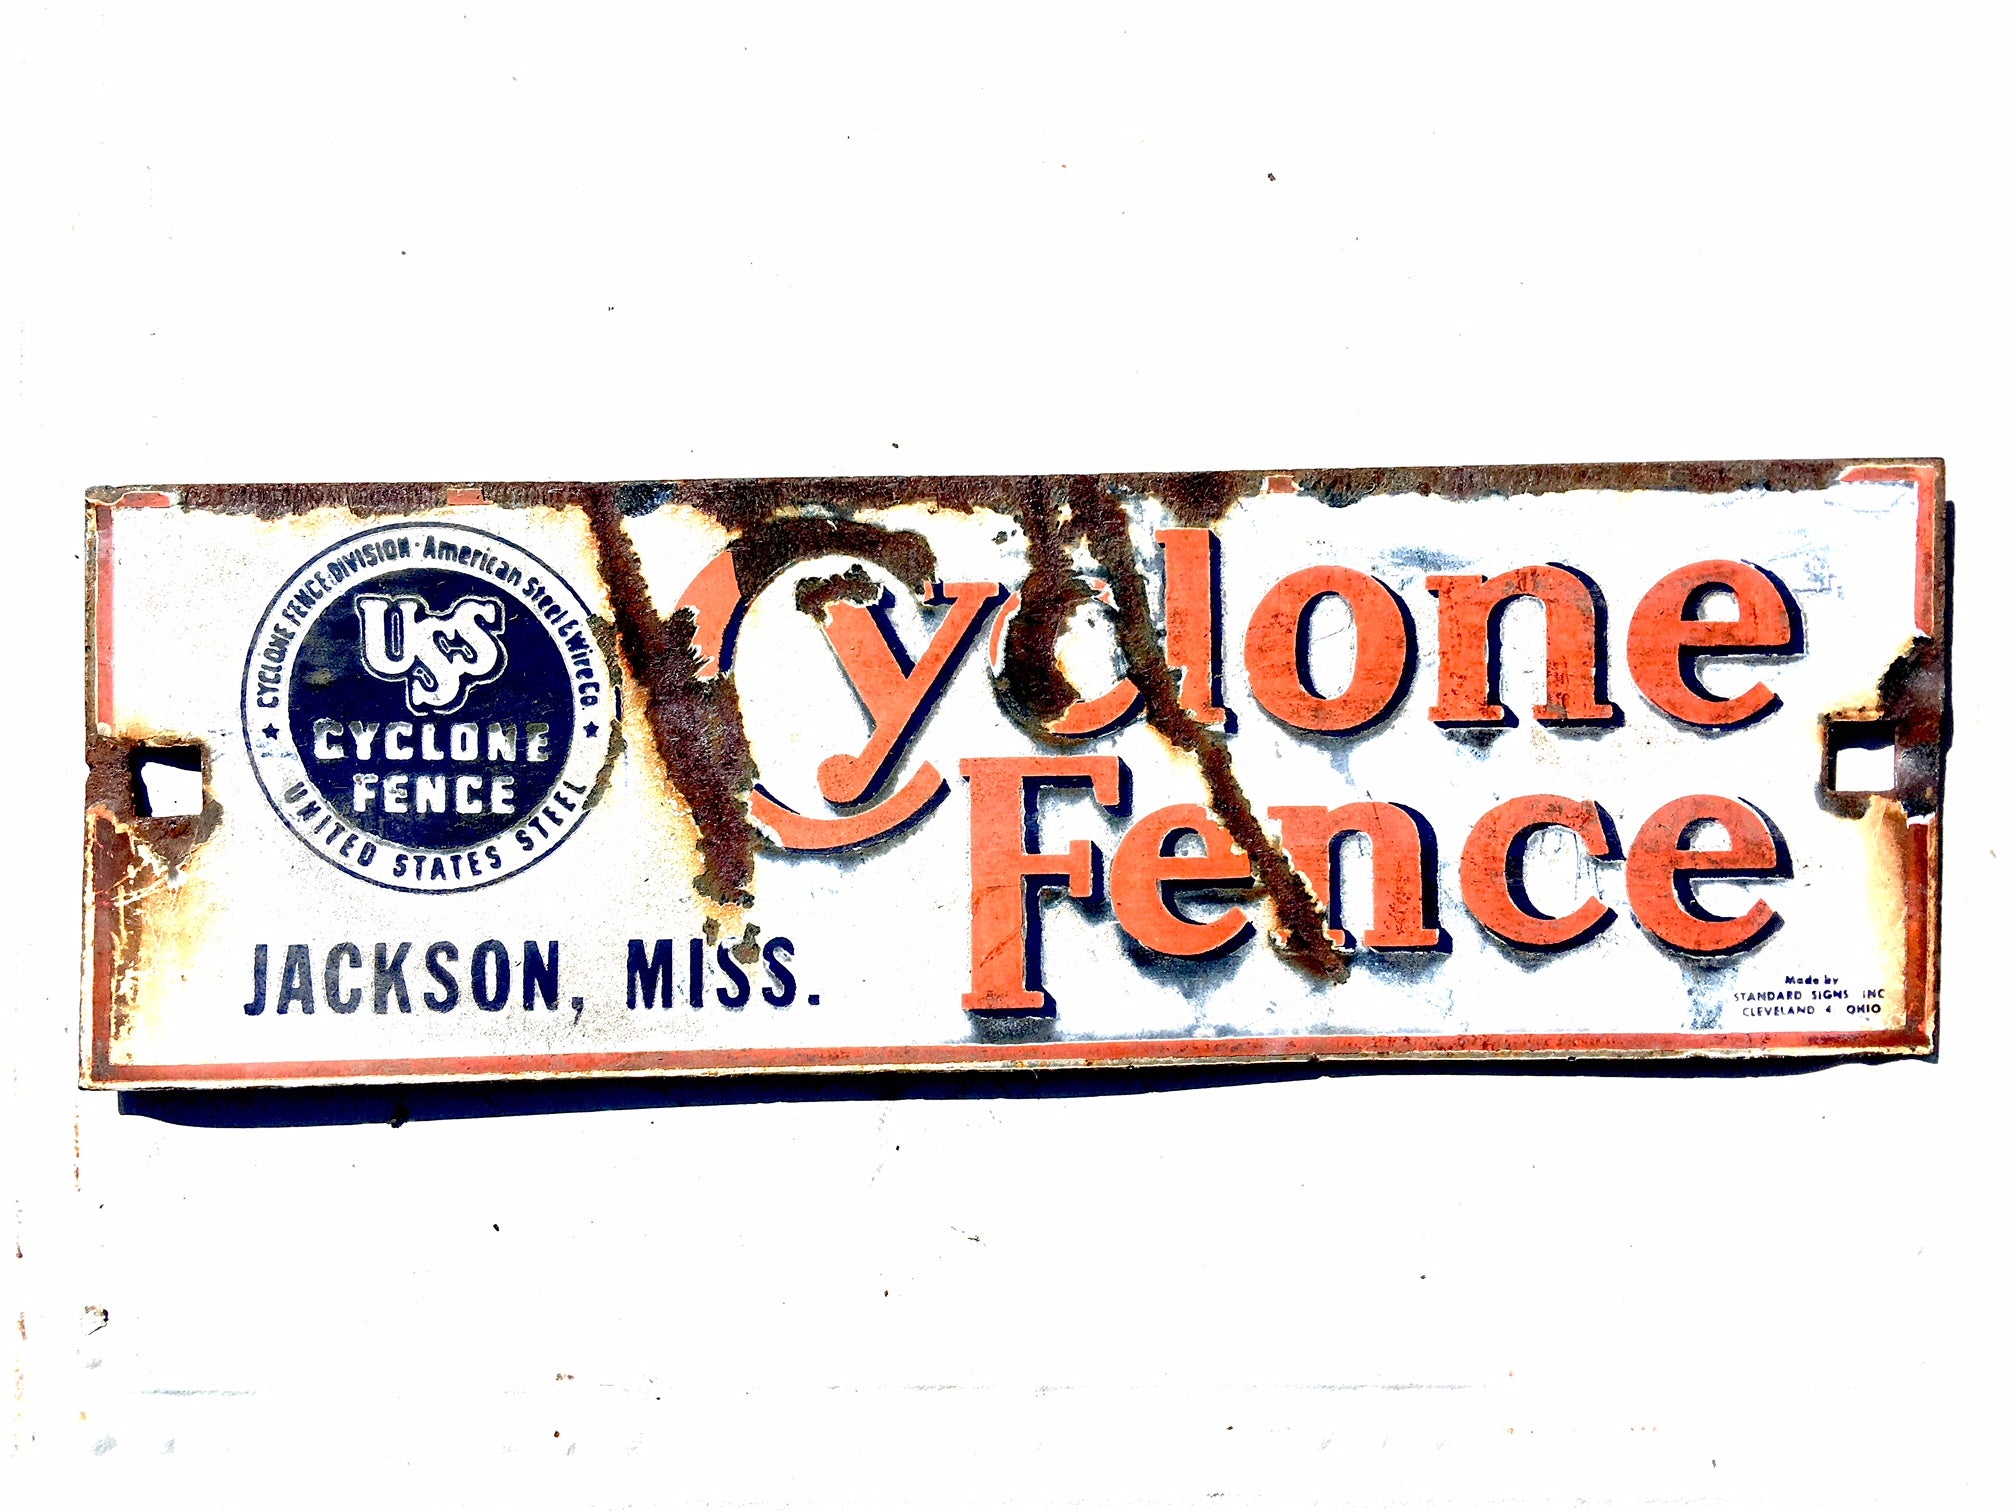 USS Cyclone Fence Jackson MISS Vintage Porcelain Sign